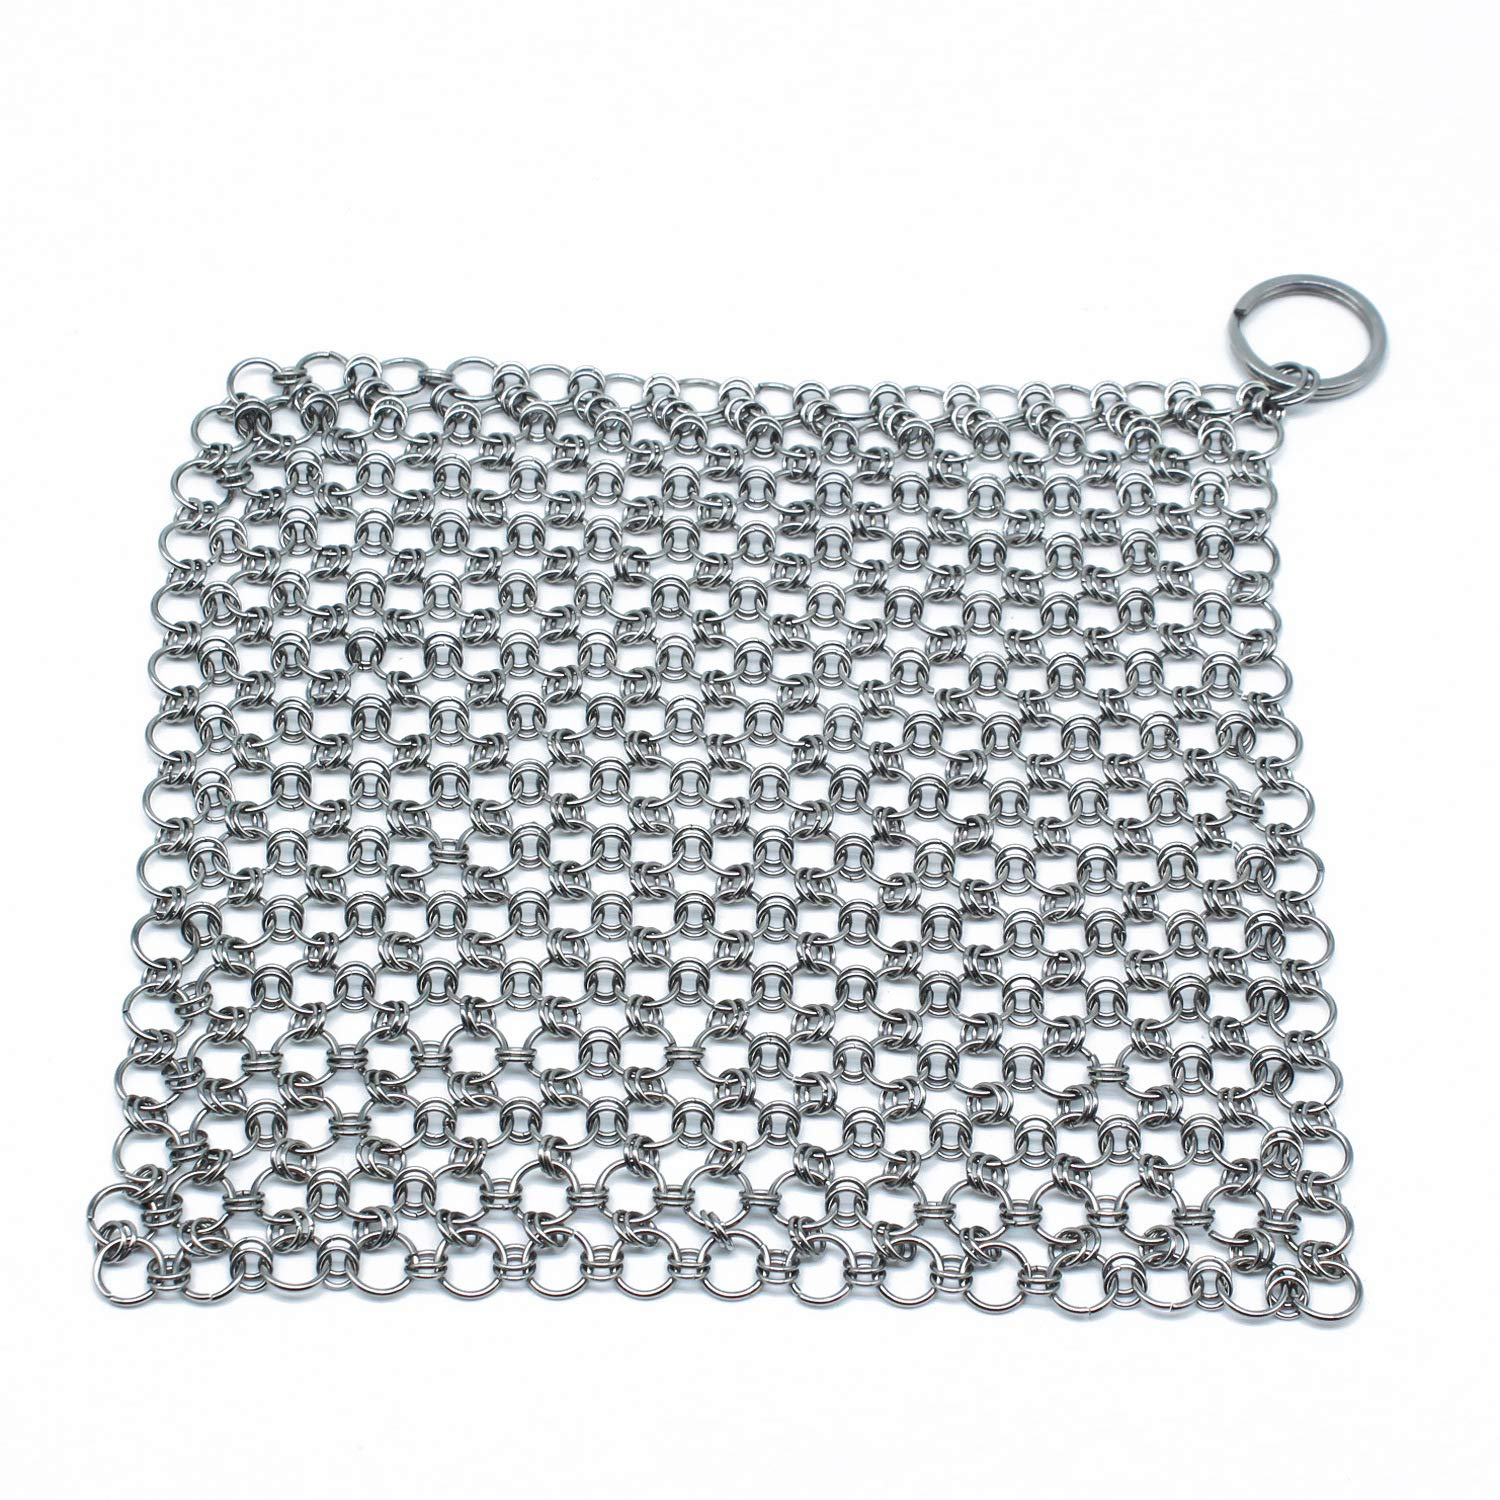 """5""""x5"""" Stainless Steel 316L Cast Iron Cleaner Chainmail Scrubber for Cast Iron Pan Pre-Seasoned Pan Dutch Ovens Waffle Iron Pans Scraper Cast Iron Grill Scraper Skillet Scraper"""